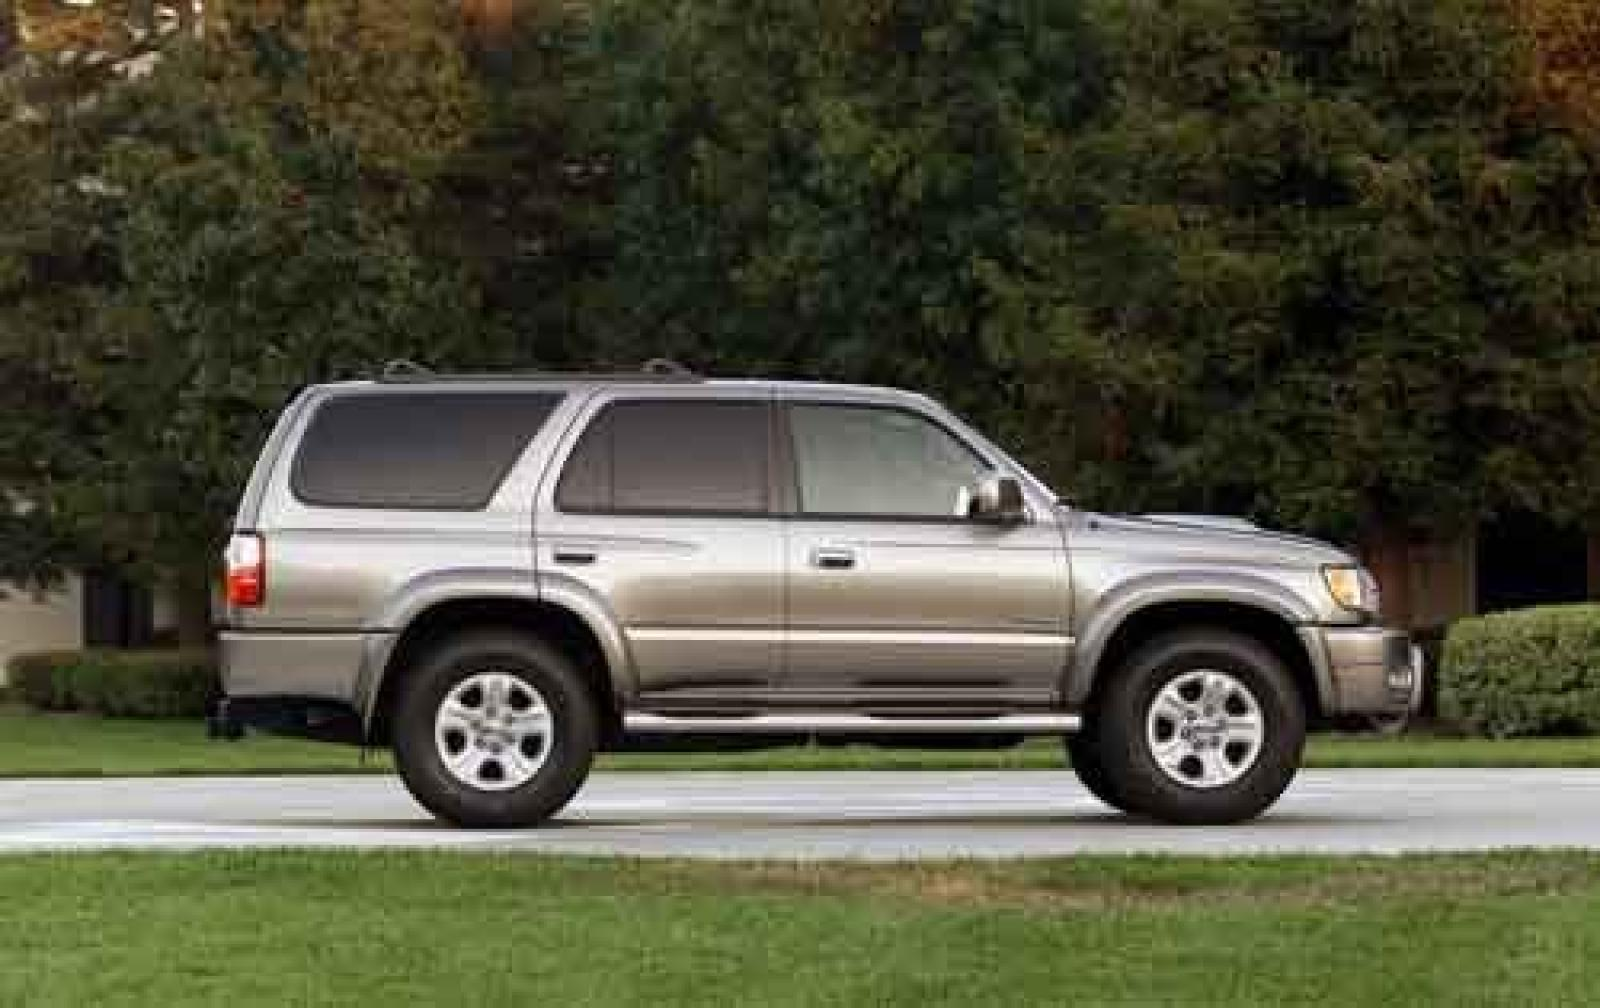 2002 toyota 4runner information and photos zombiedrive. Black Bedroom Furniture Sets. Home Design Ideas